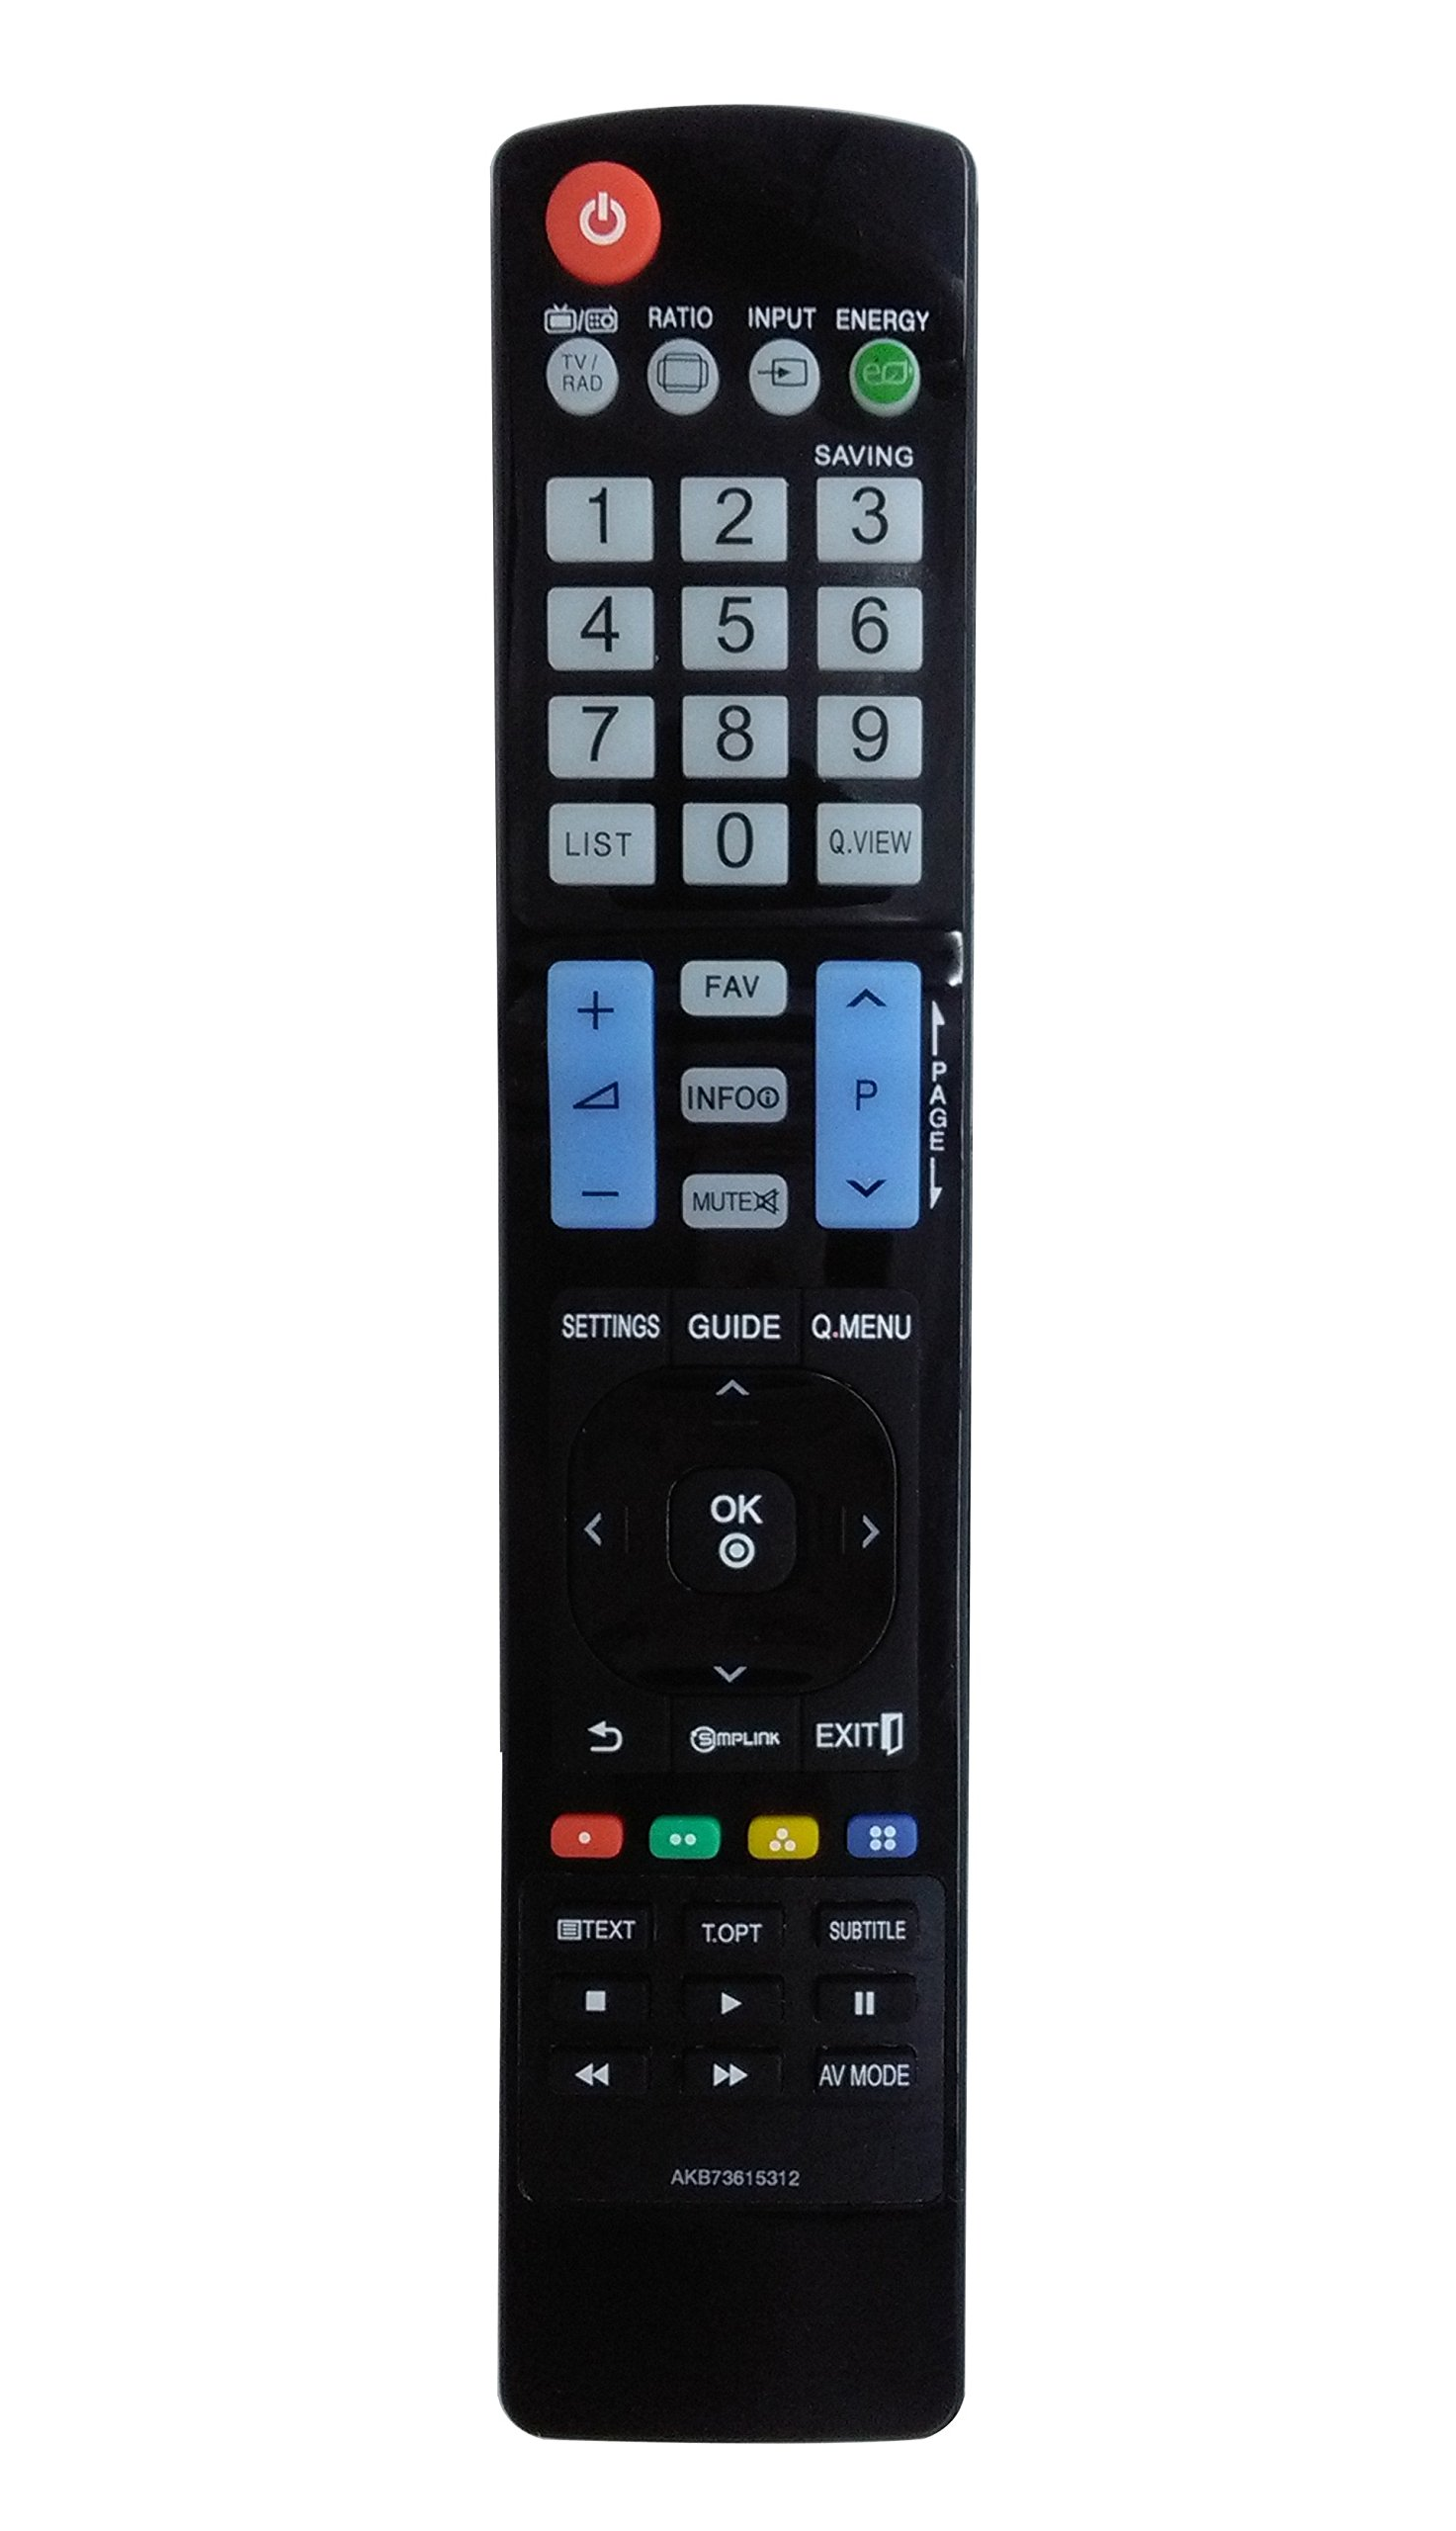 New Vinabty AKB73615312 Replaced Remote Controller fit for LG TV 47LS4600 50PA4500 50PA6500 60PA6500 32LS4600 42LS4600 Sub AKB74115502 AKB72914216